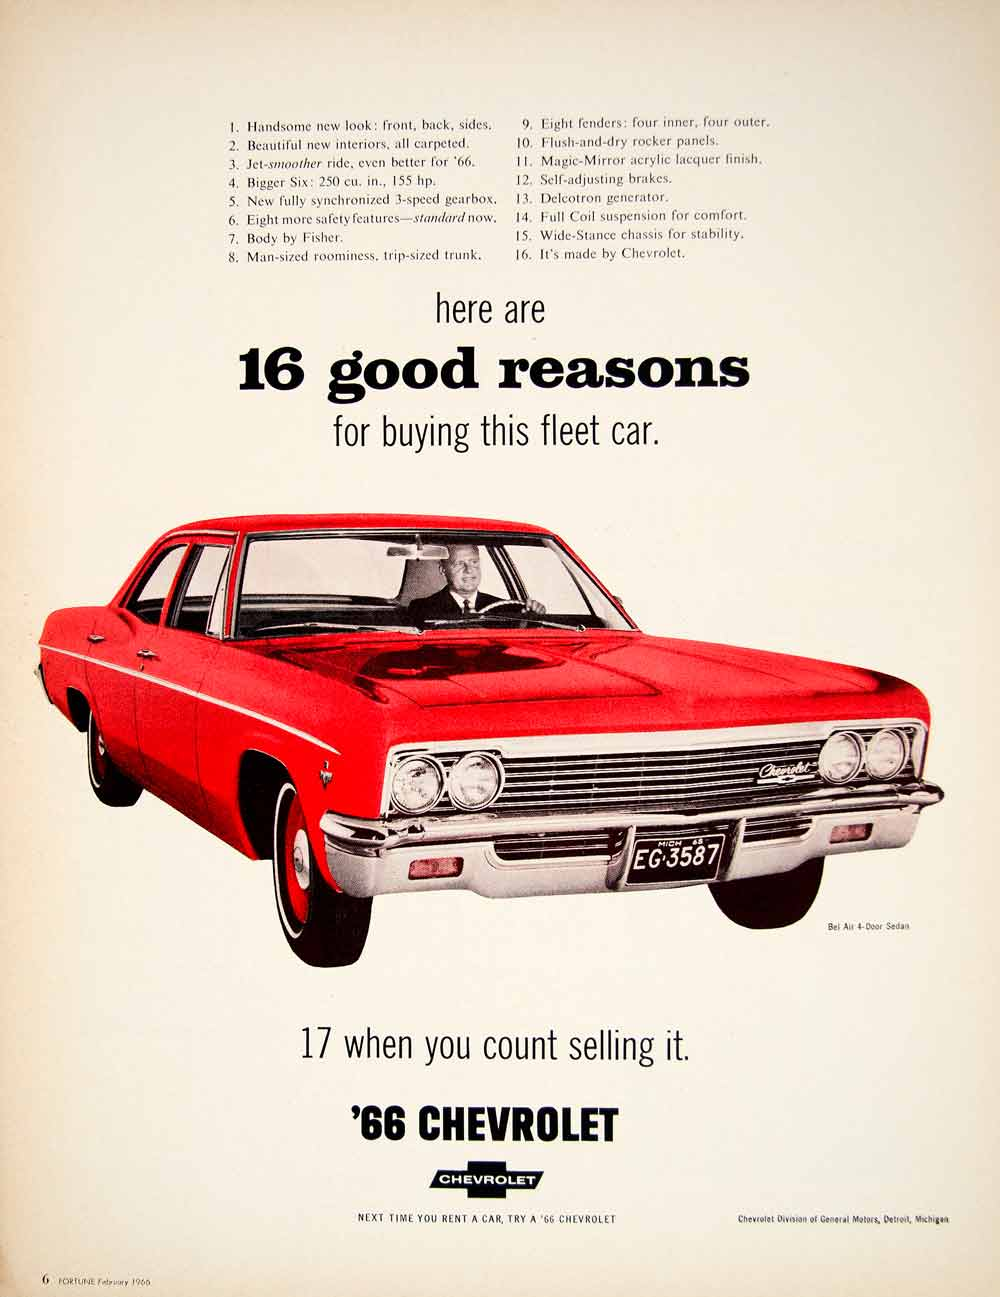 Exceptional 1966 Ad Vintage Chevrolet Bel Air 4 Door Sedan Red Fleet Car GM Automobile  YFM2